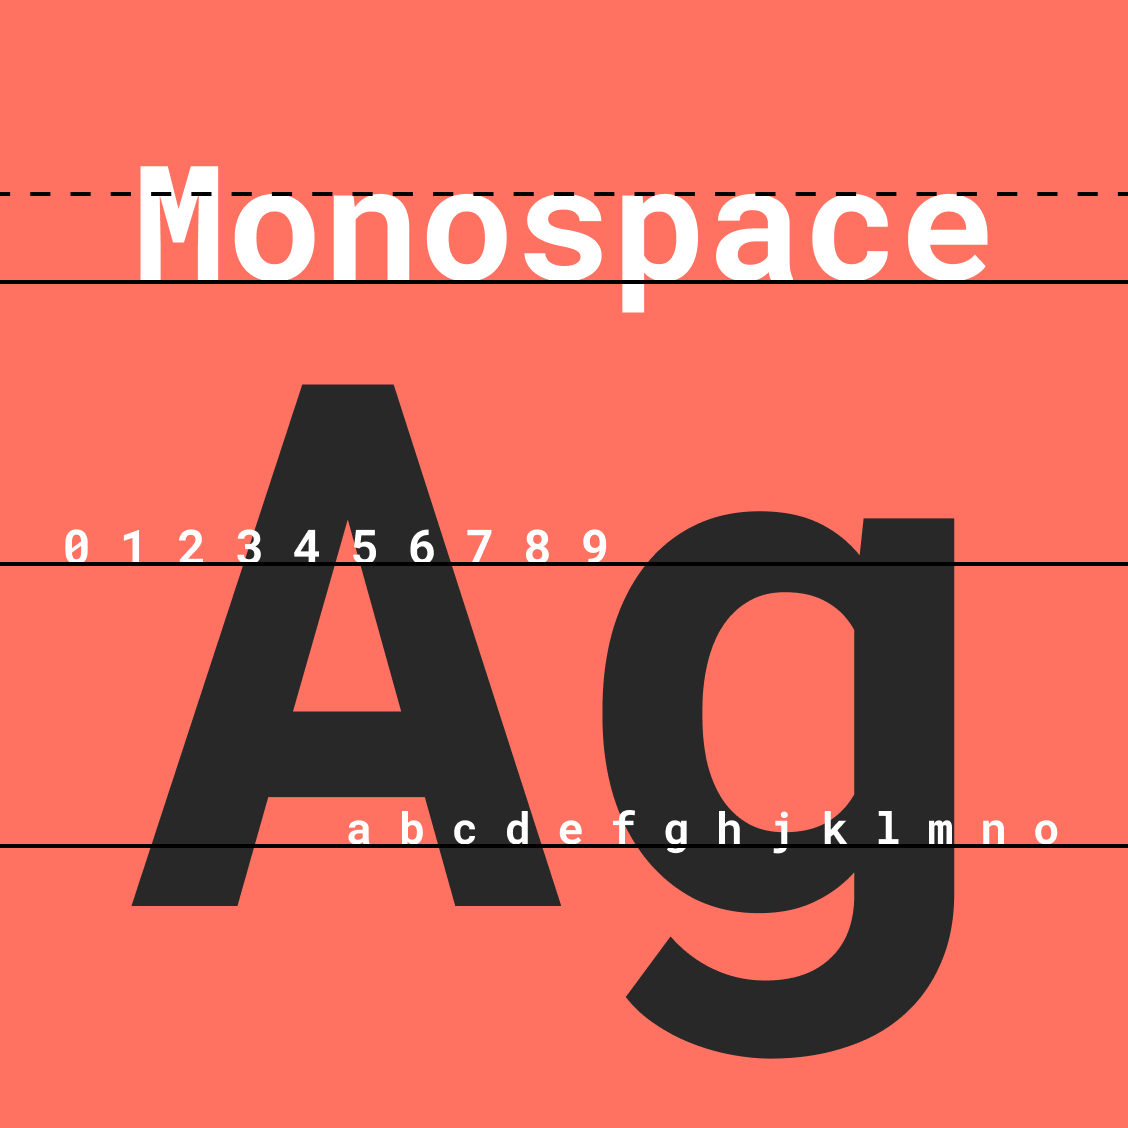 Other monospace users